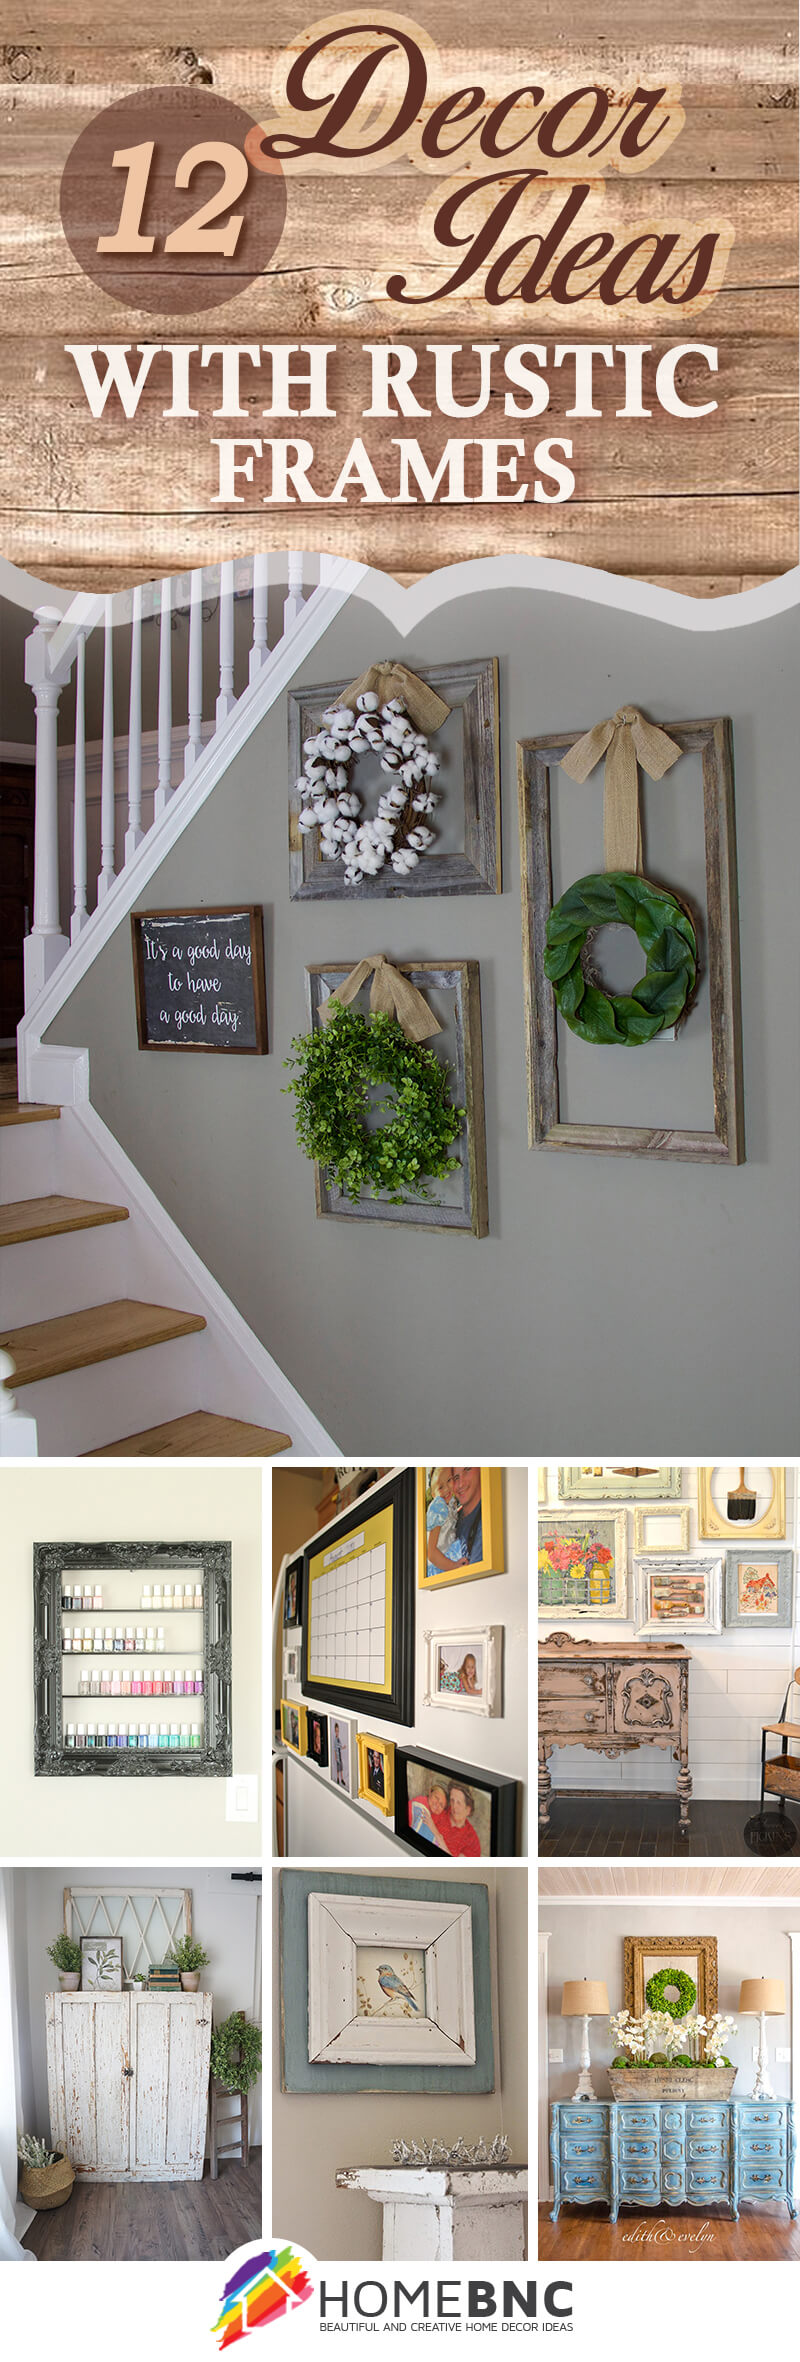 Decorating Ideas with Rustic Frames